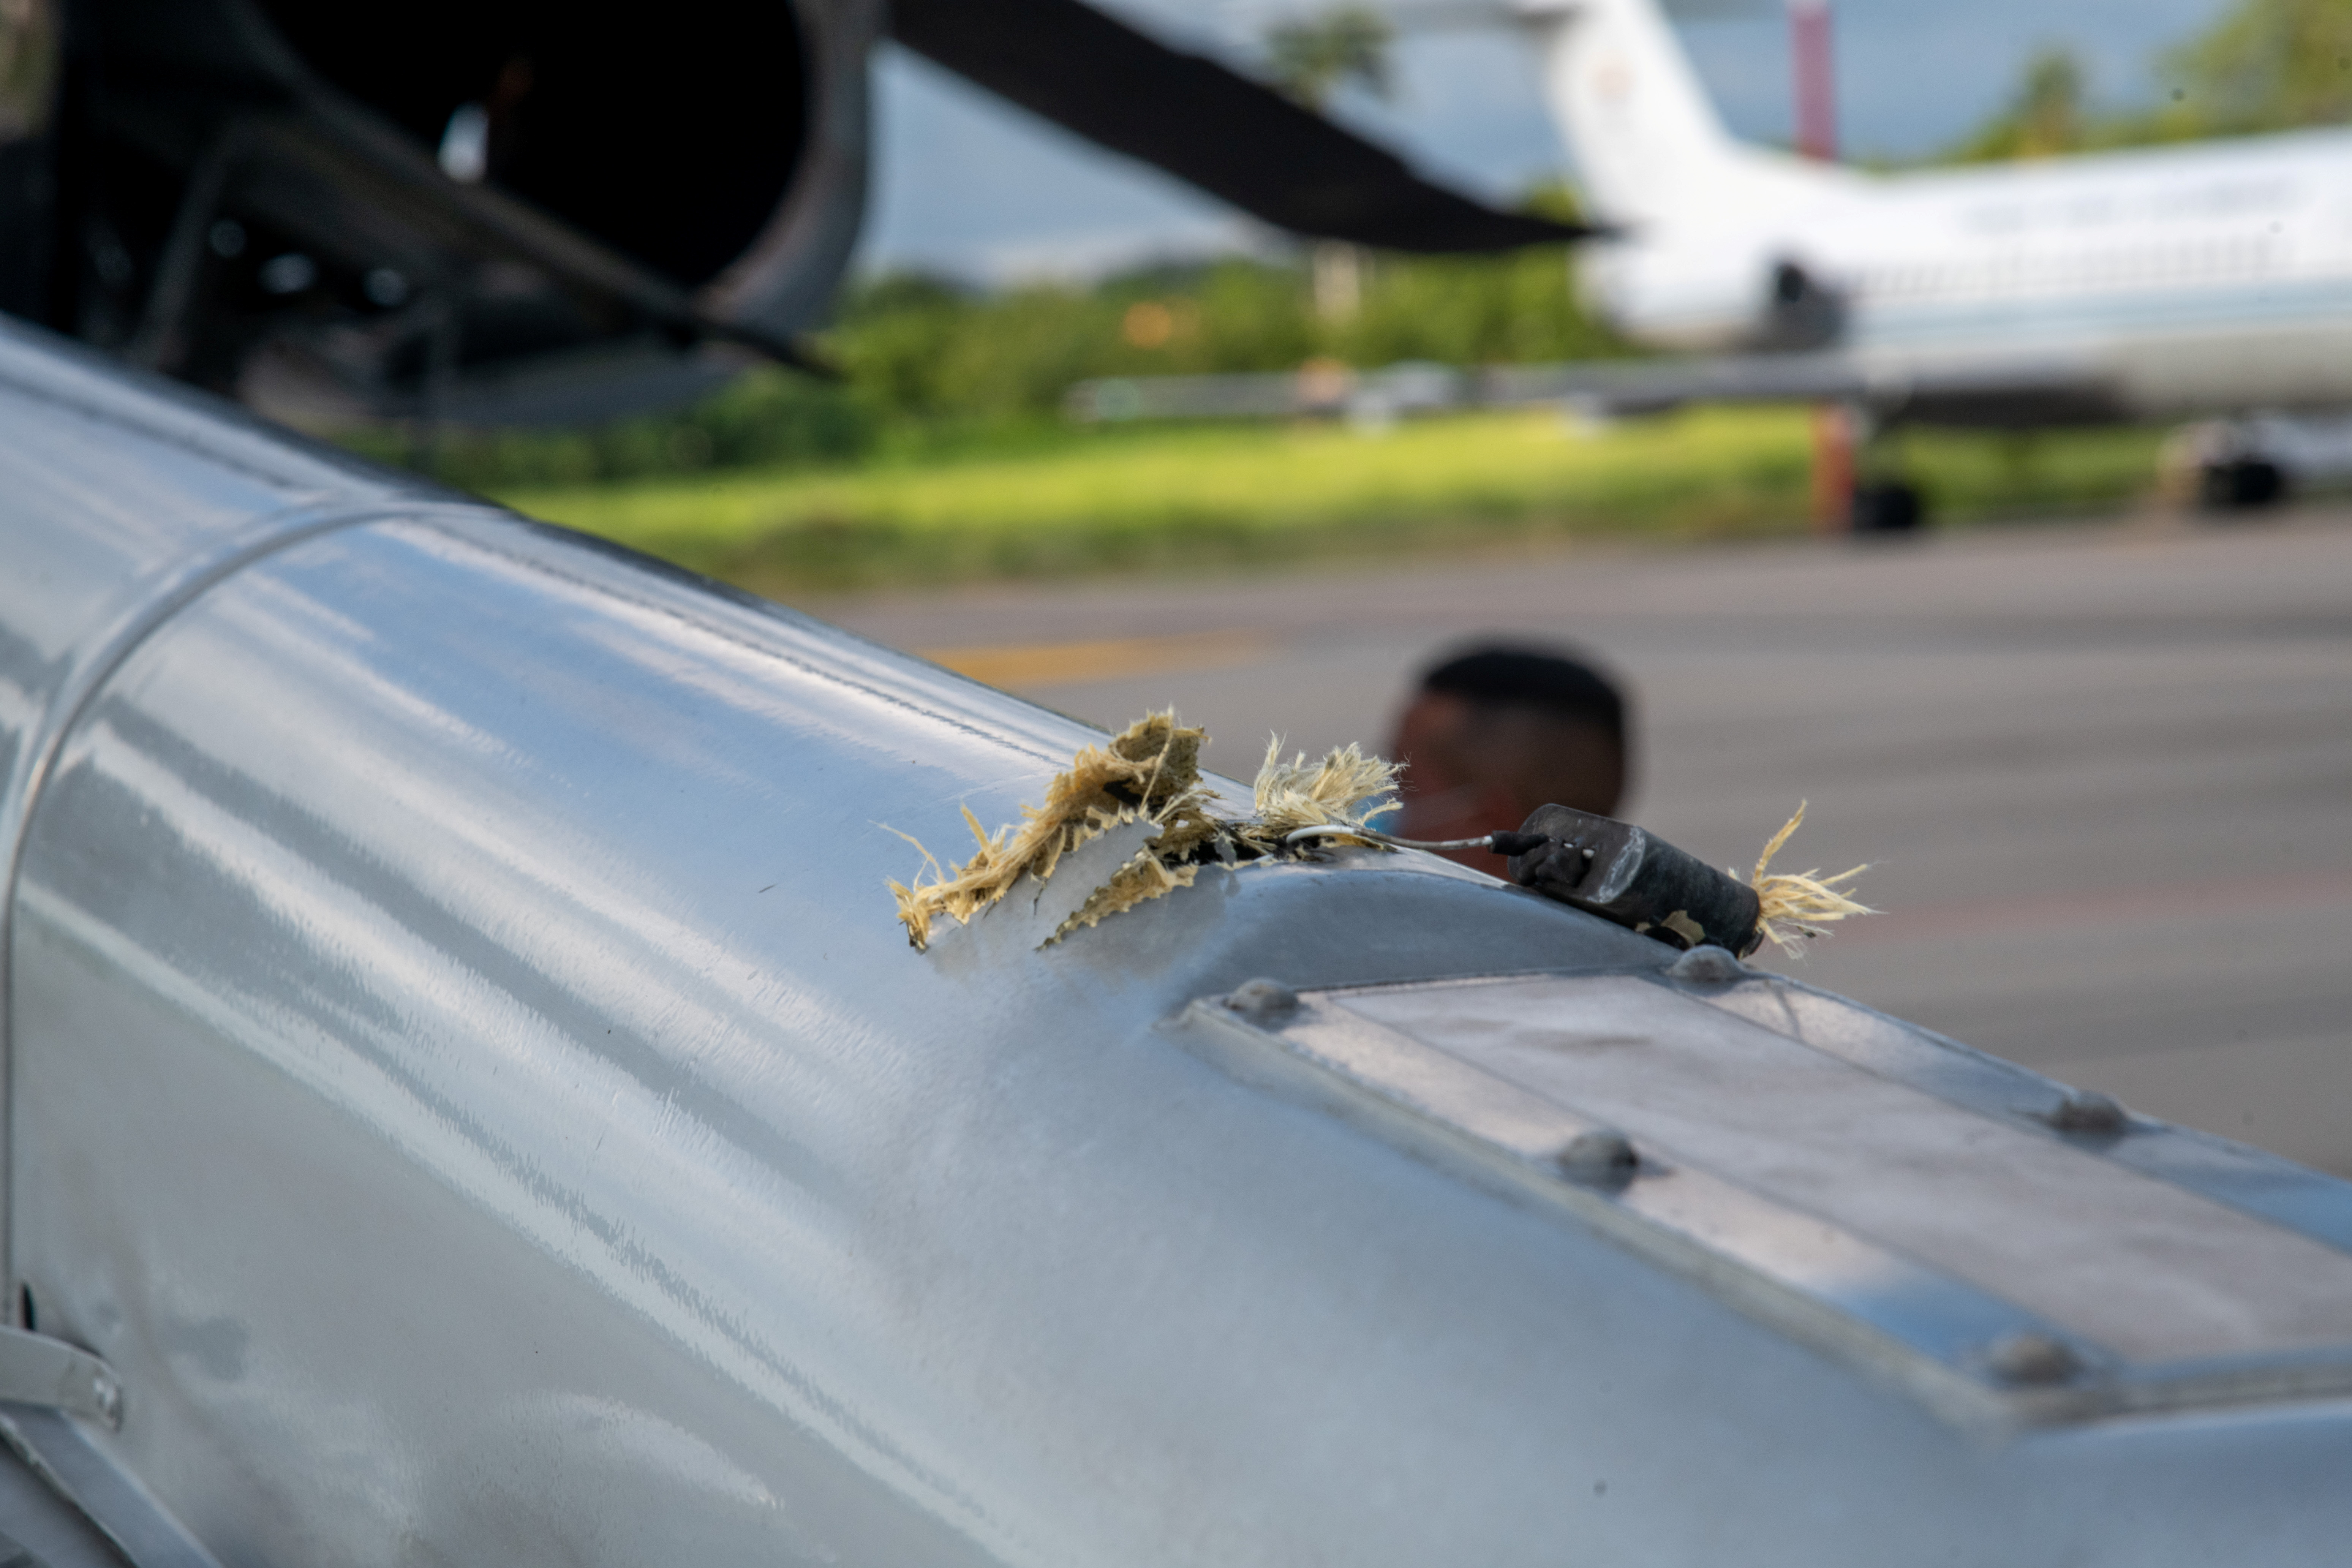 The mark of a projectile impact is seen on a helicopter that Colombian President Ivan Duque was traveling in, after it suffered an attack during an overflight, according to authorities, in Cucuta, Colombia June 25, 2021. Colombia Presidency/Handout via REUTERS